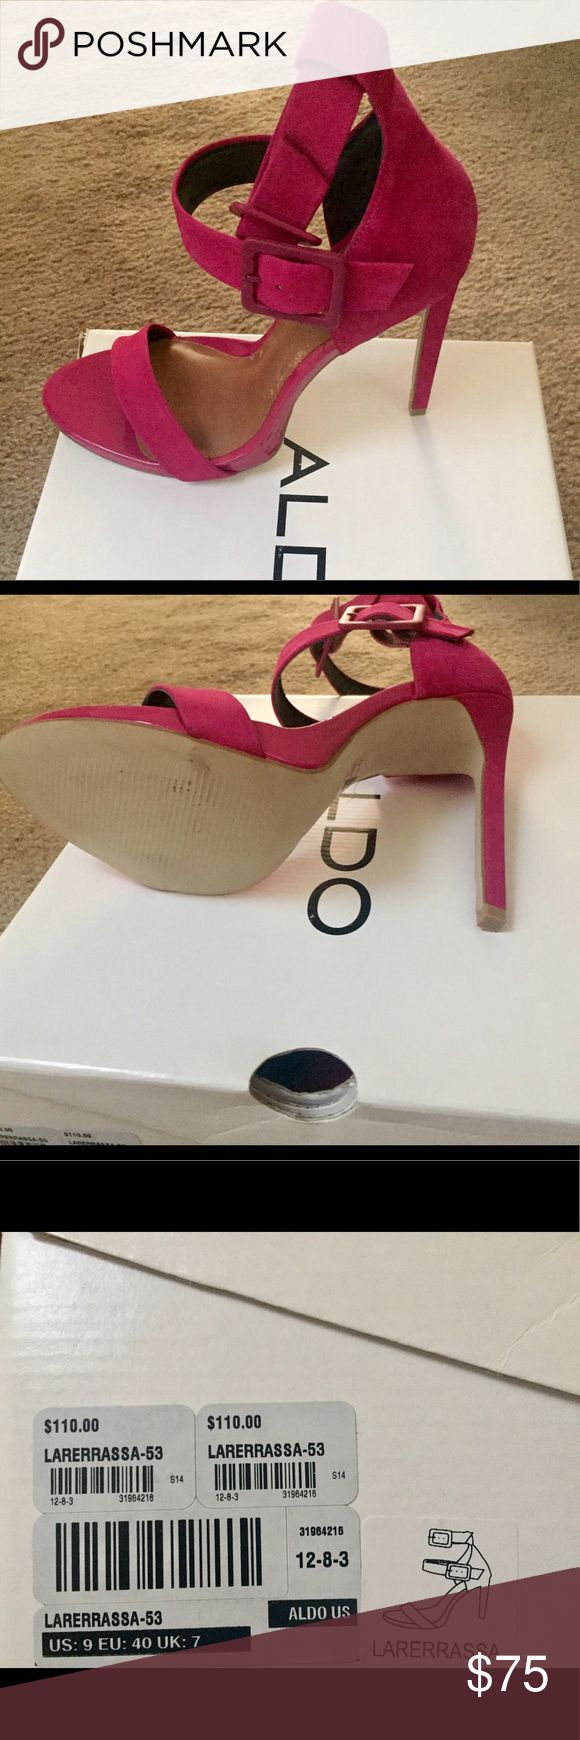 Pink strappy aldo heels Never warn cute pink heels Aldo Shoes Heels